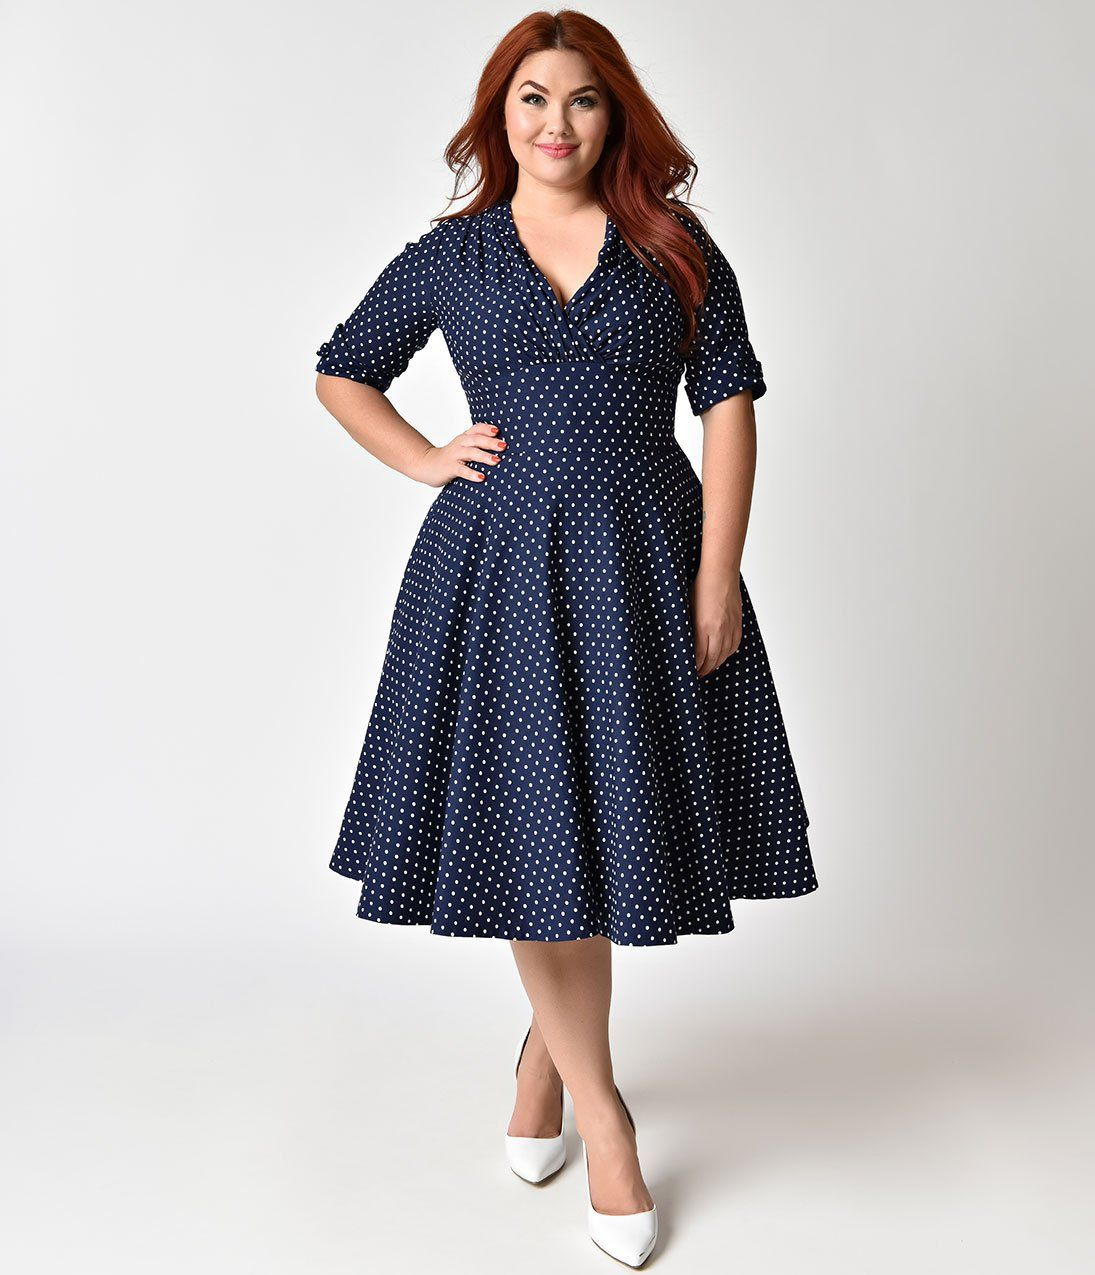 1950s Plus Size Dresses, Clothing | 1940s -1950s Plus Size ...